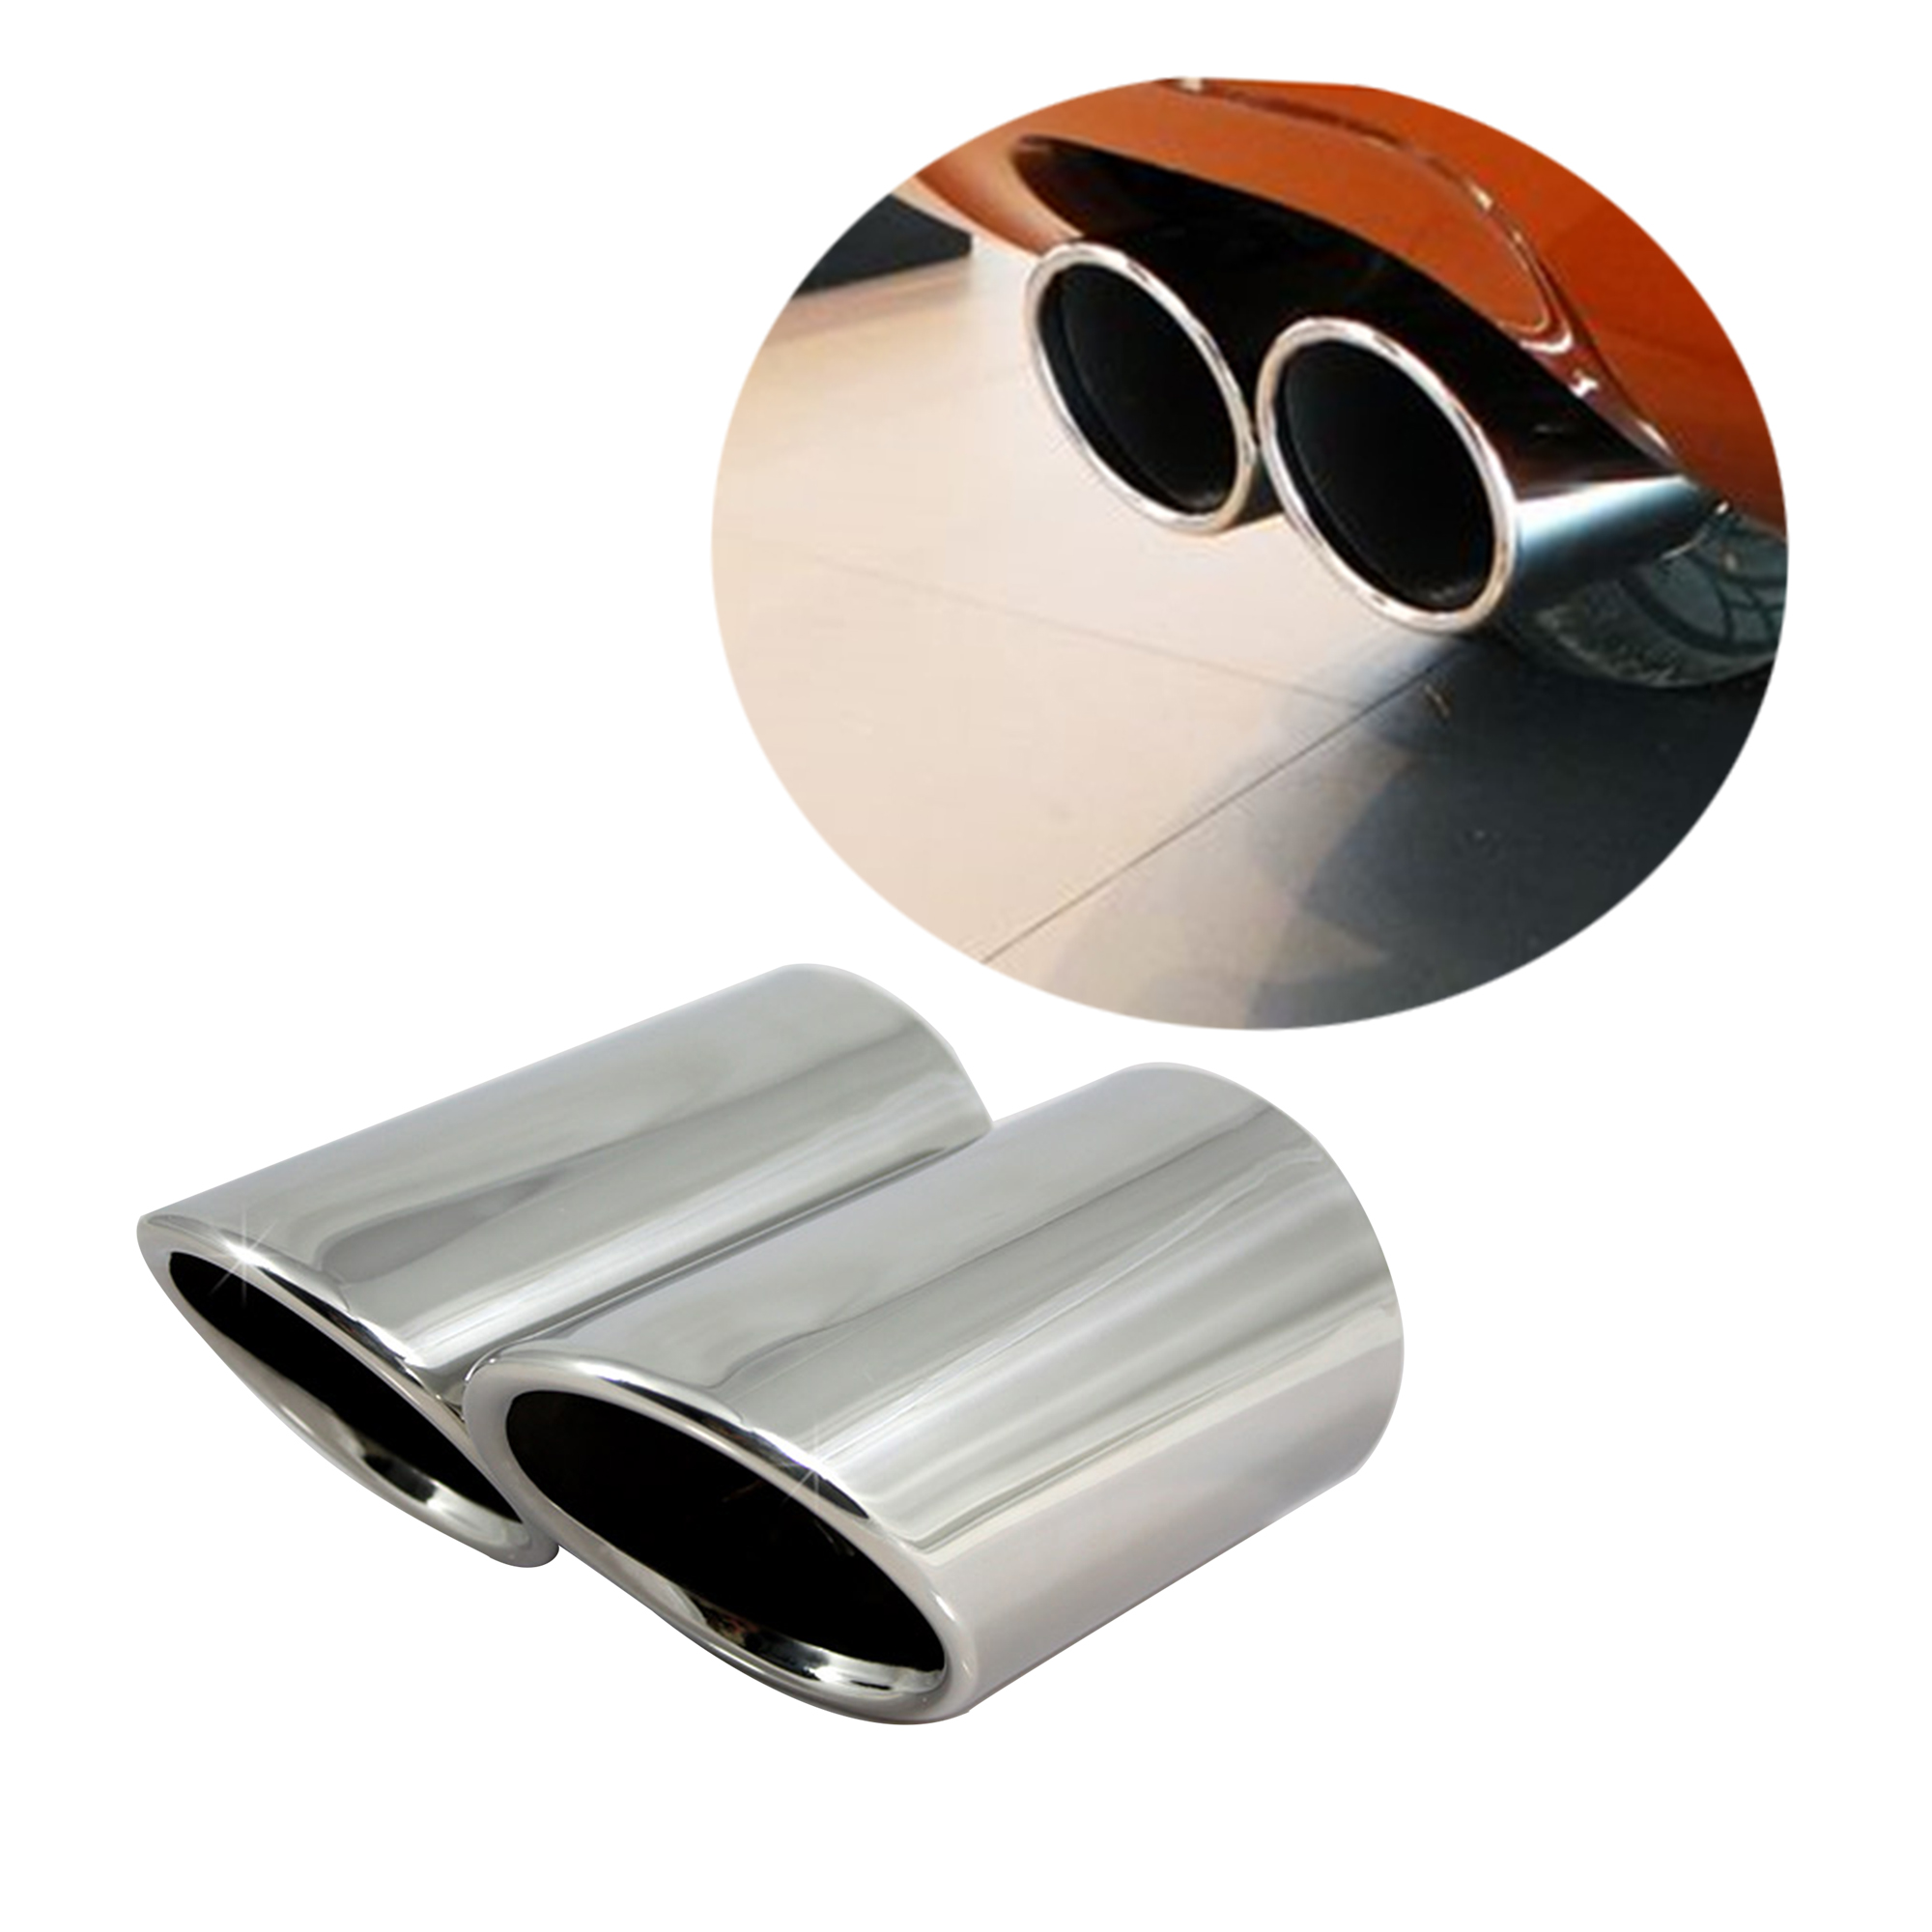 Stainless Steel Exhaust Muffler Tip Tail Pipe Fit VW Passat B7 2013-2018